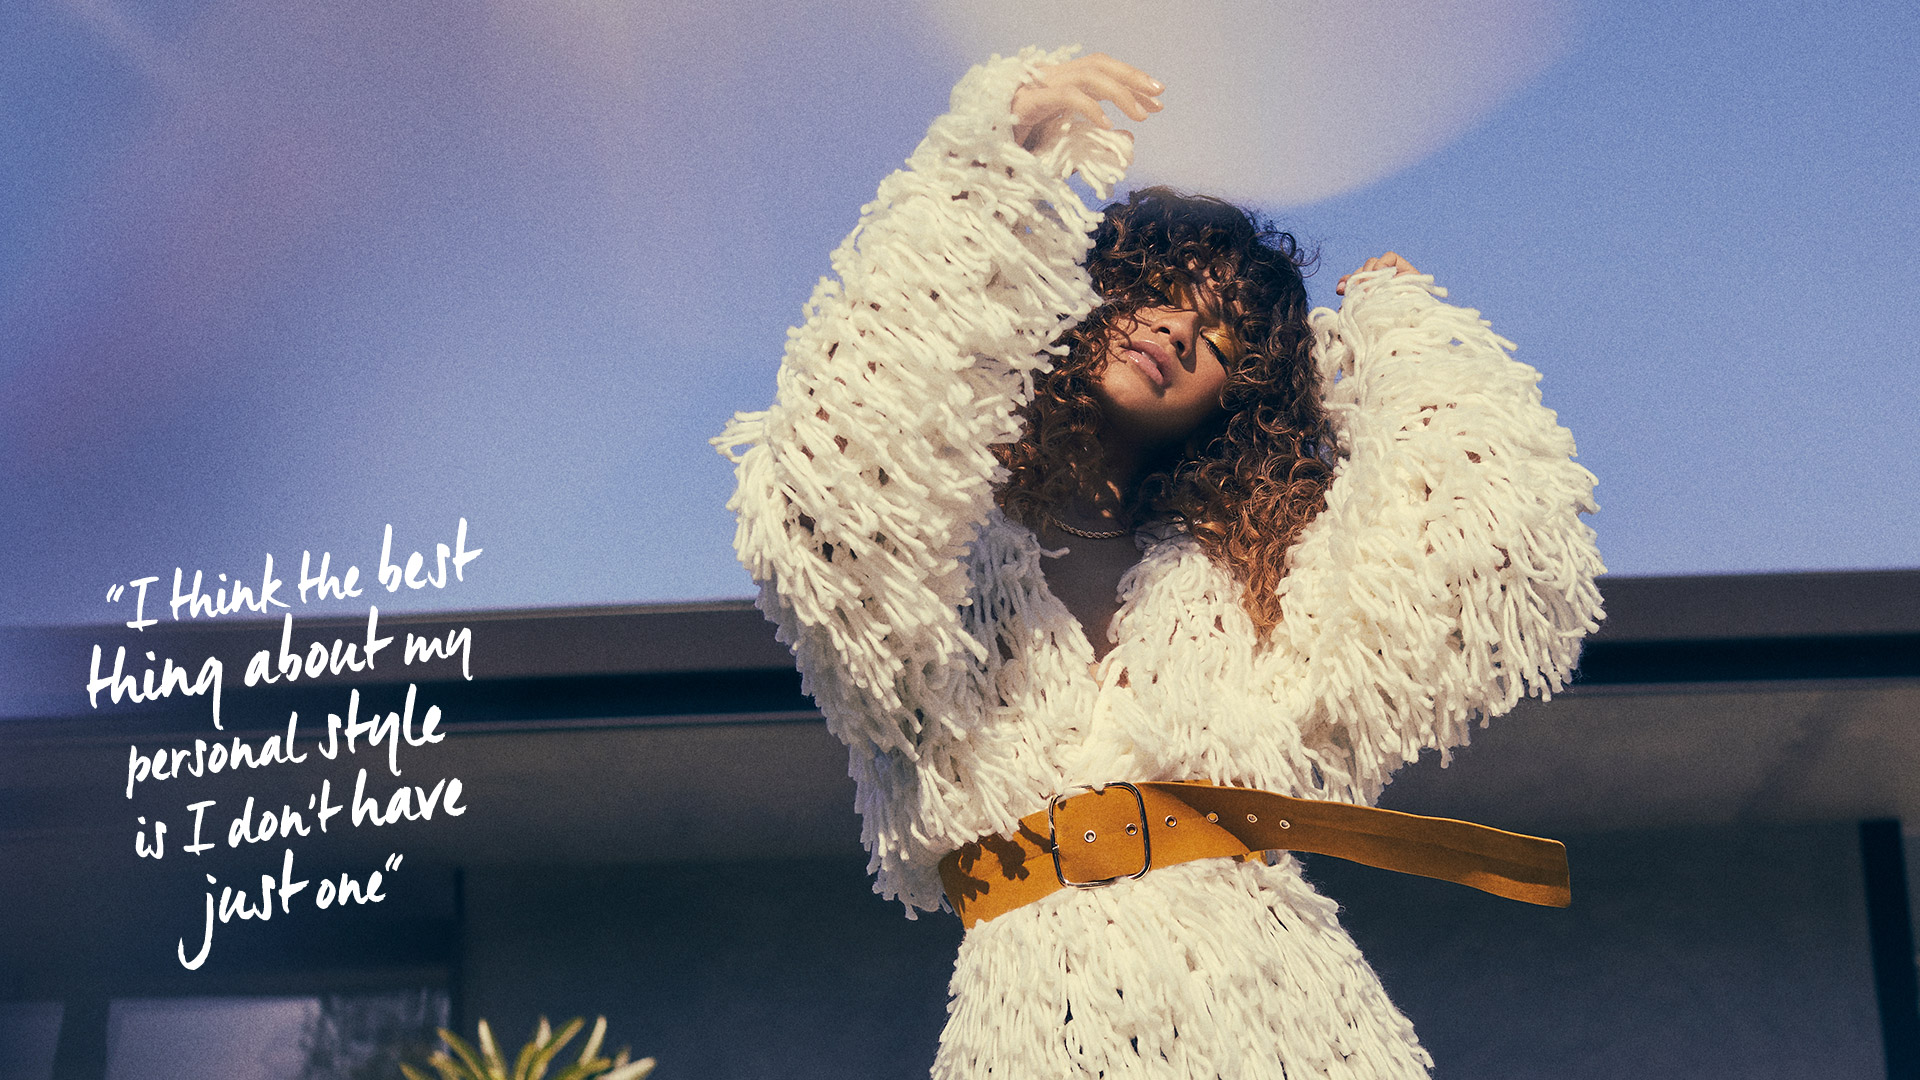 http://us.boohoo.com/on/demandware.static/-/Library-Sites-boohoo-content-global/default/dw1ae727b8/landing-pages/zendaya/img/Zendaya_Landing_Page_1_V4_12.jpg